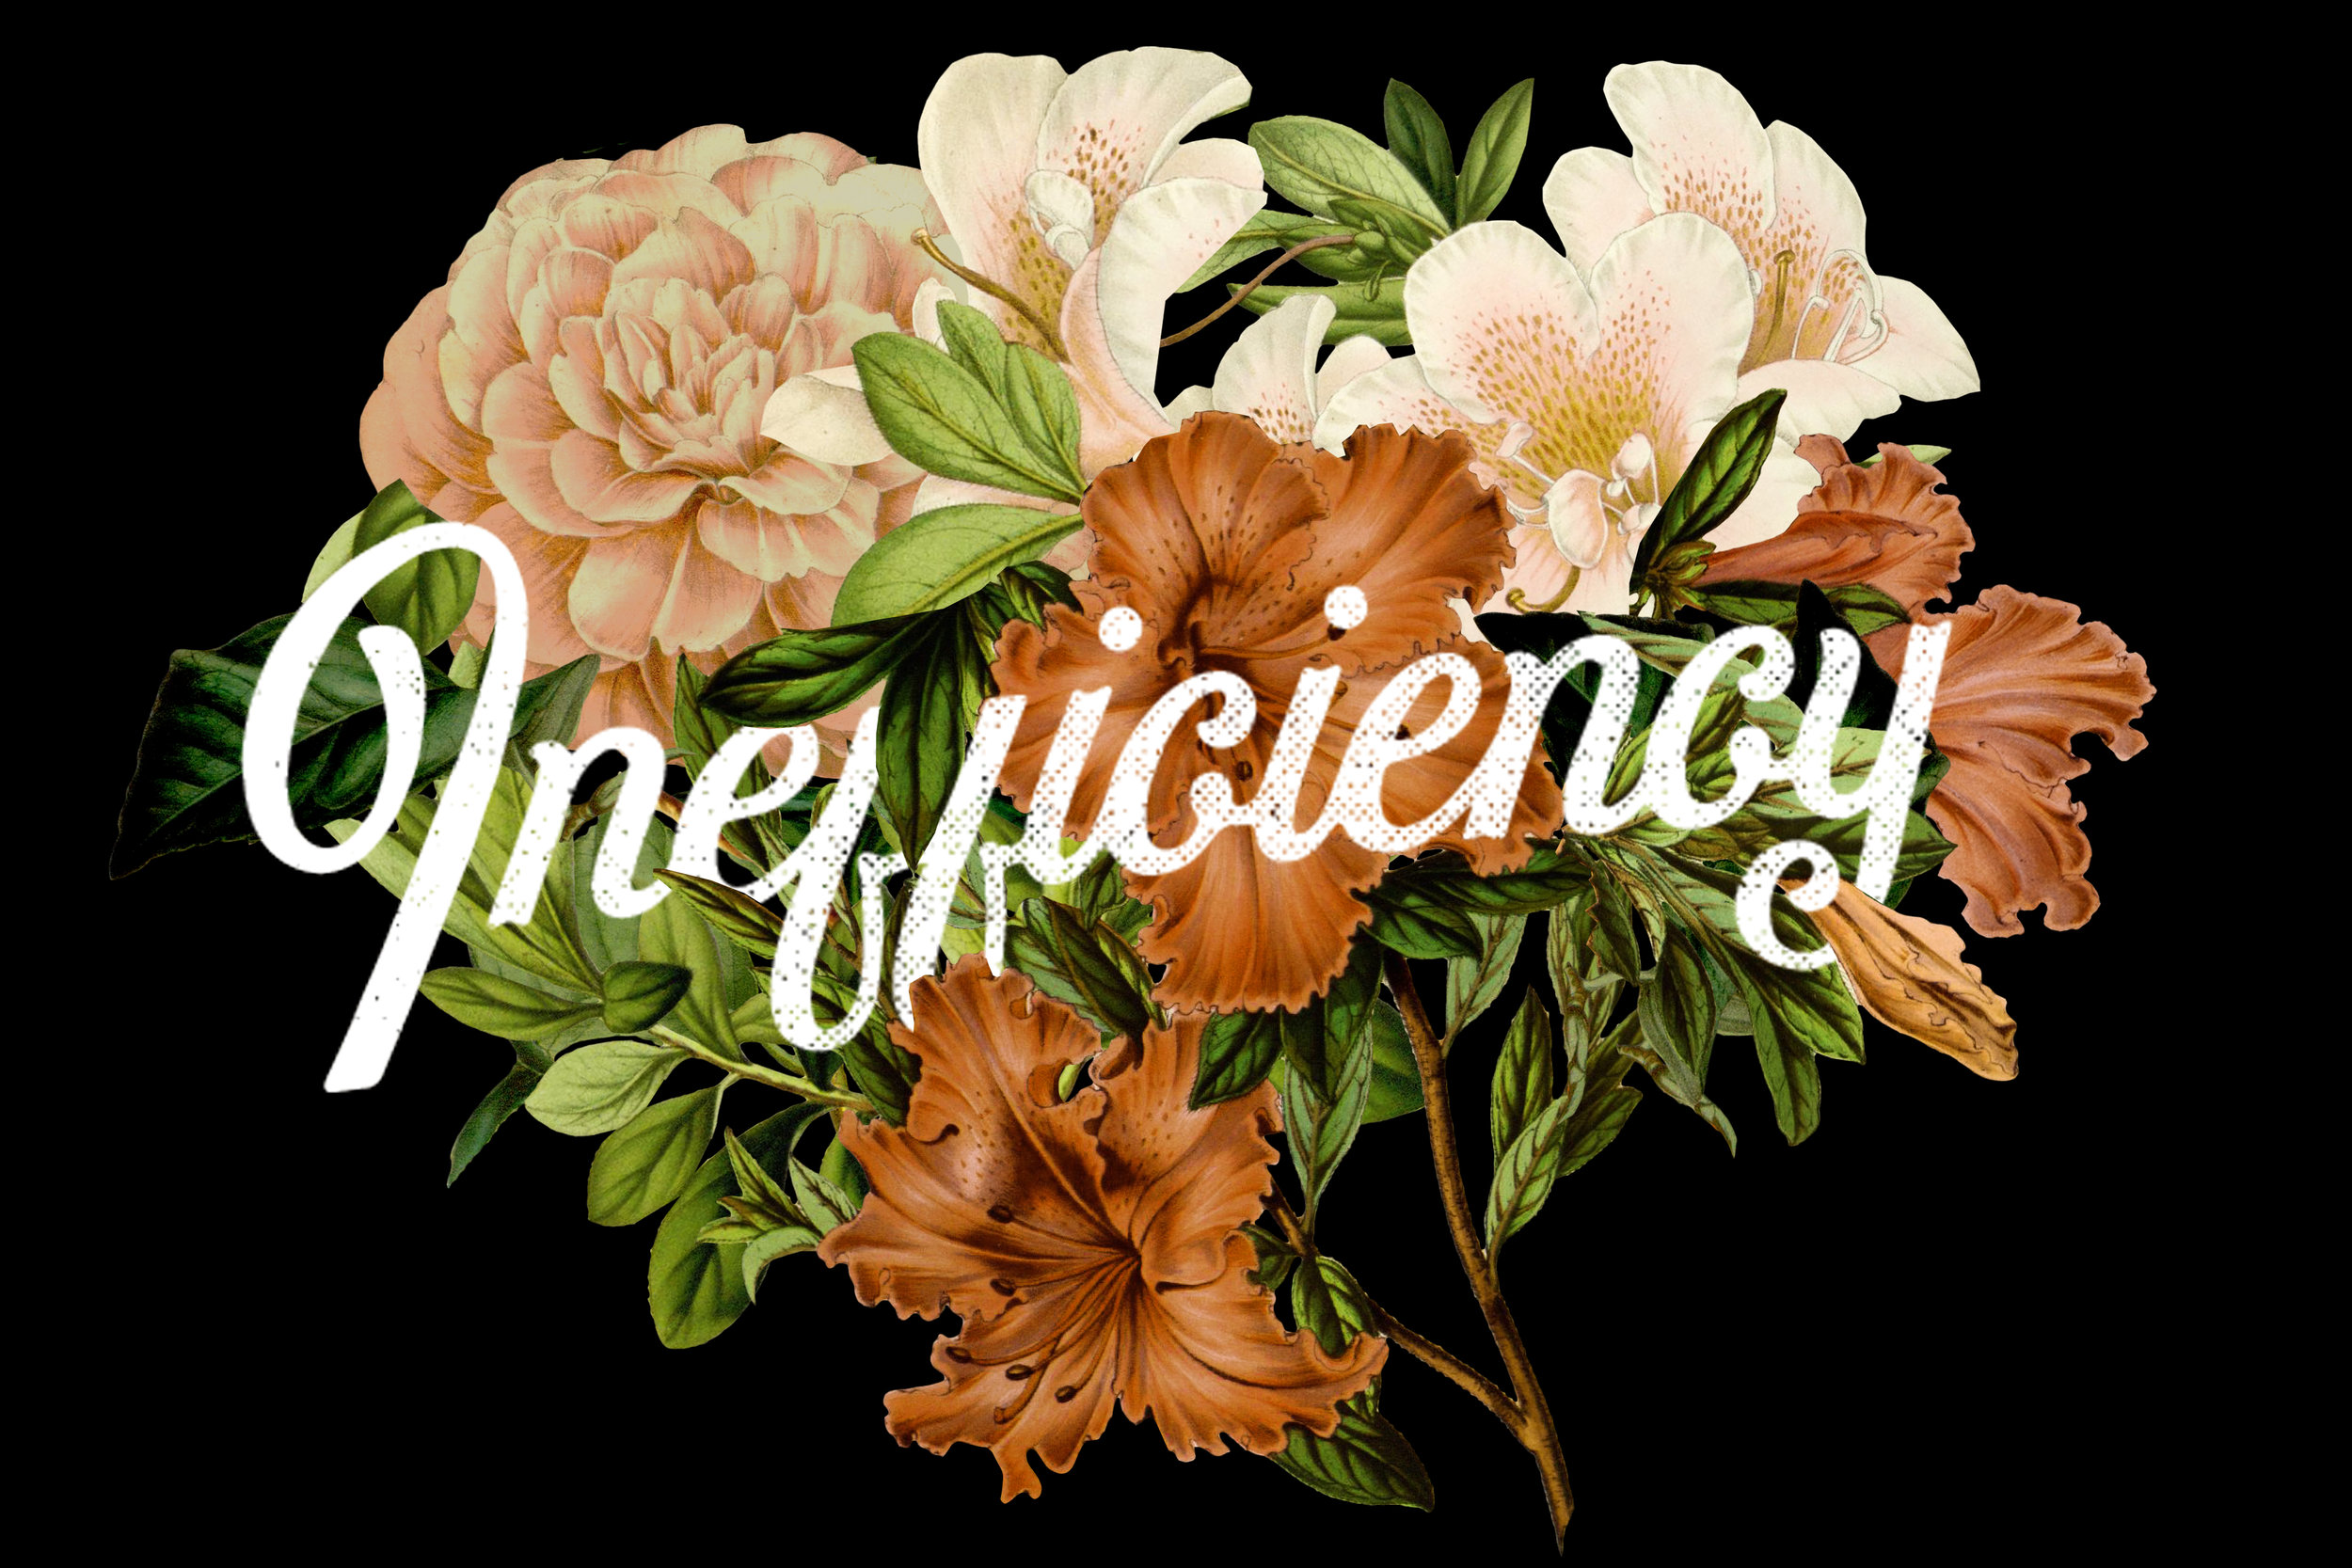 inefficiency: - the massive amount of time, energy and resources that go into deepening awareness, love, relationships, convictions and spirituality.